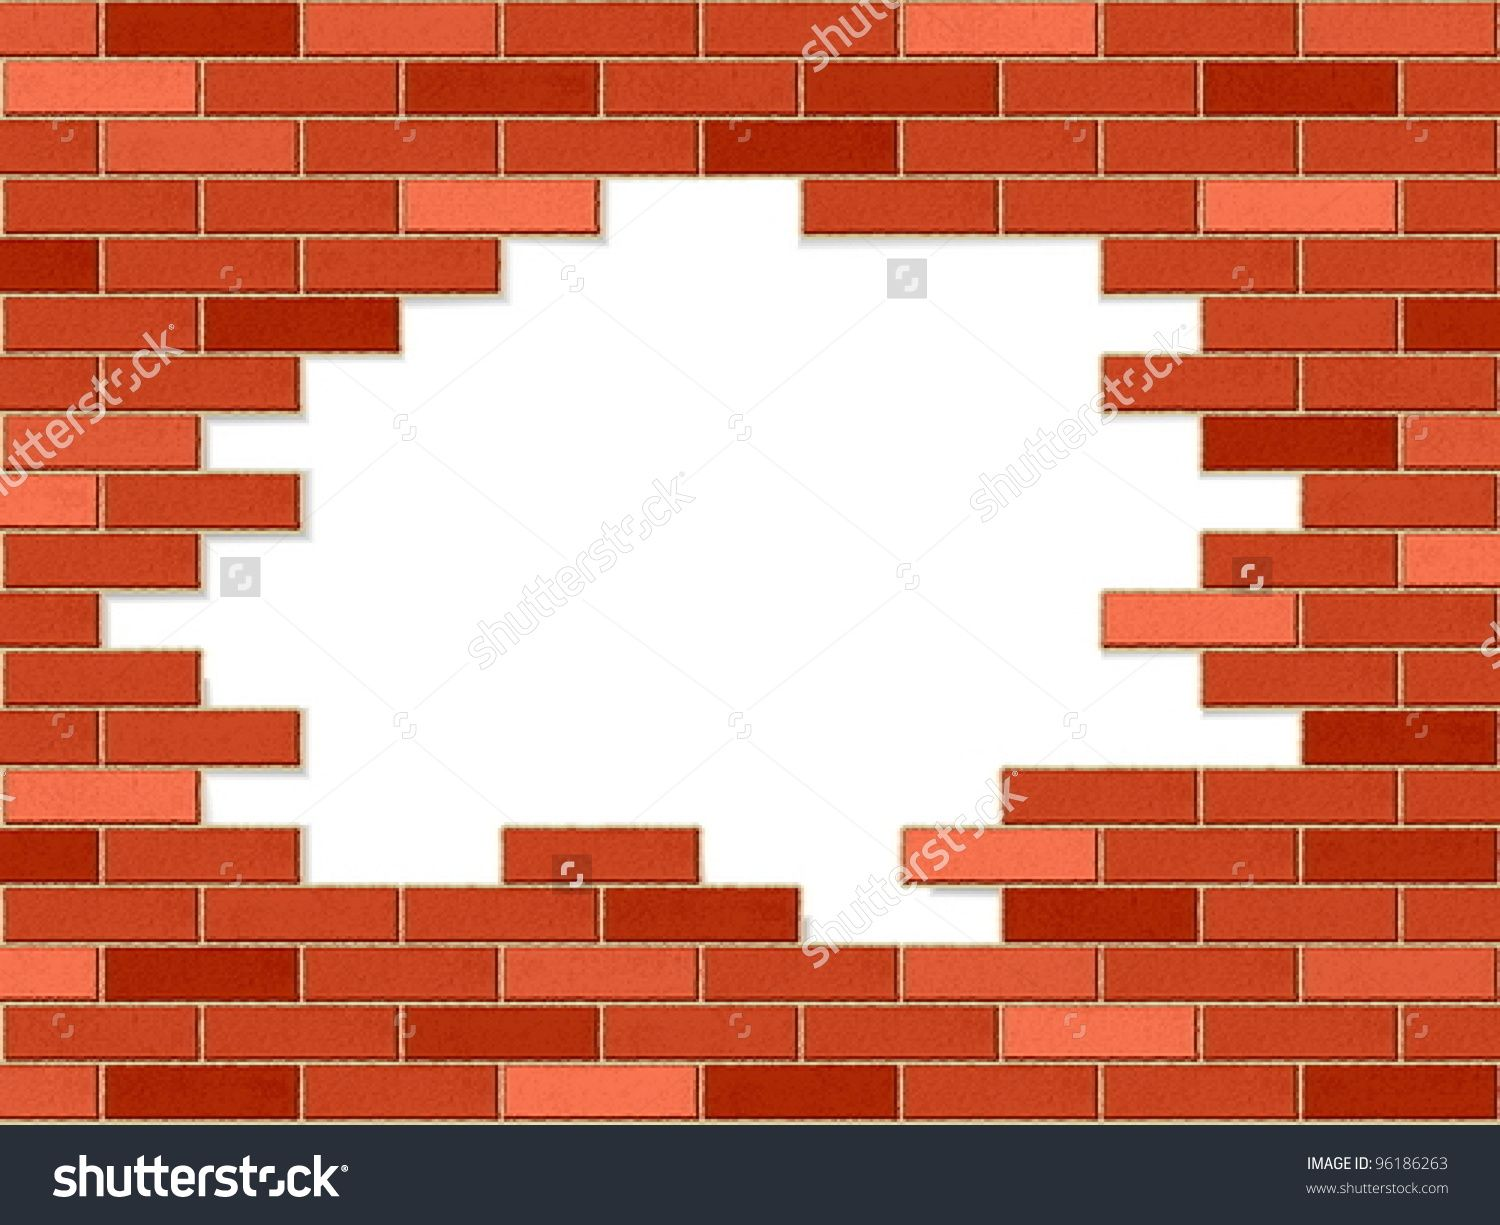 clipart stock Broken wall clipart. Station